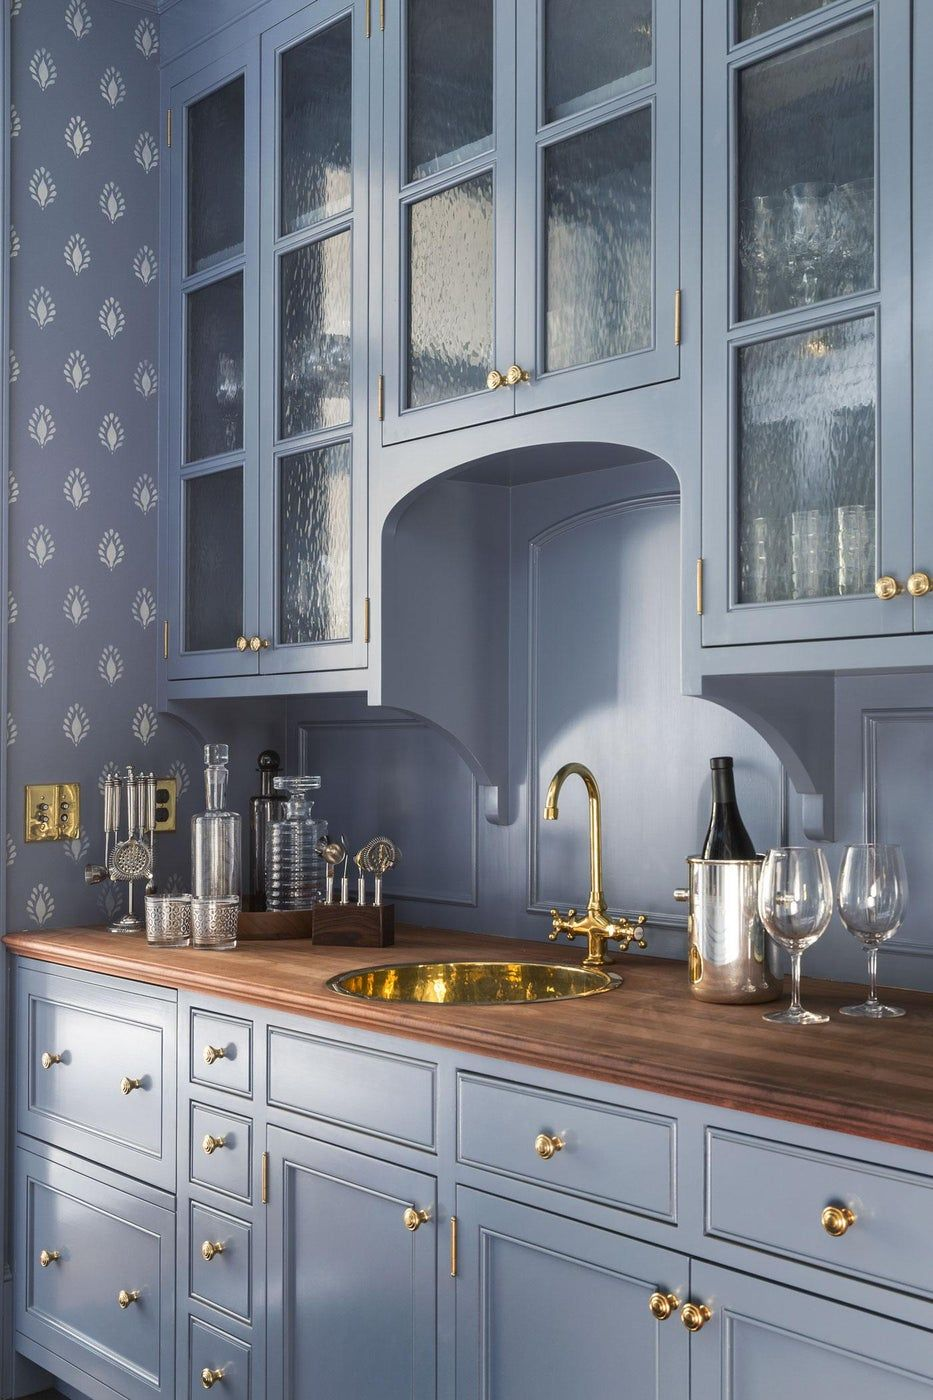 Pin By Kevin Thompson On 2020 Kitchen In 2020 Beautiful Kitchen Cabinets Blue Kitchen Walls Blue Gray Kitchen Cabinets